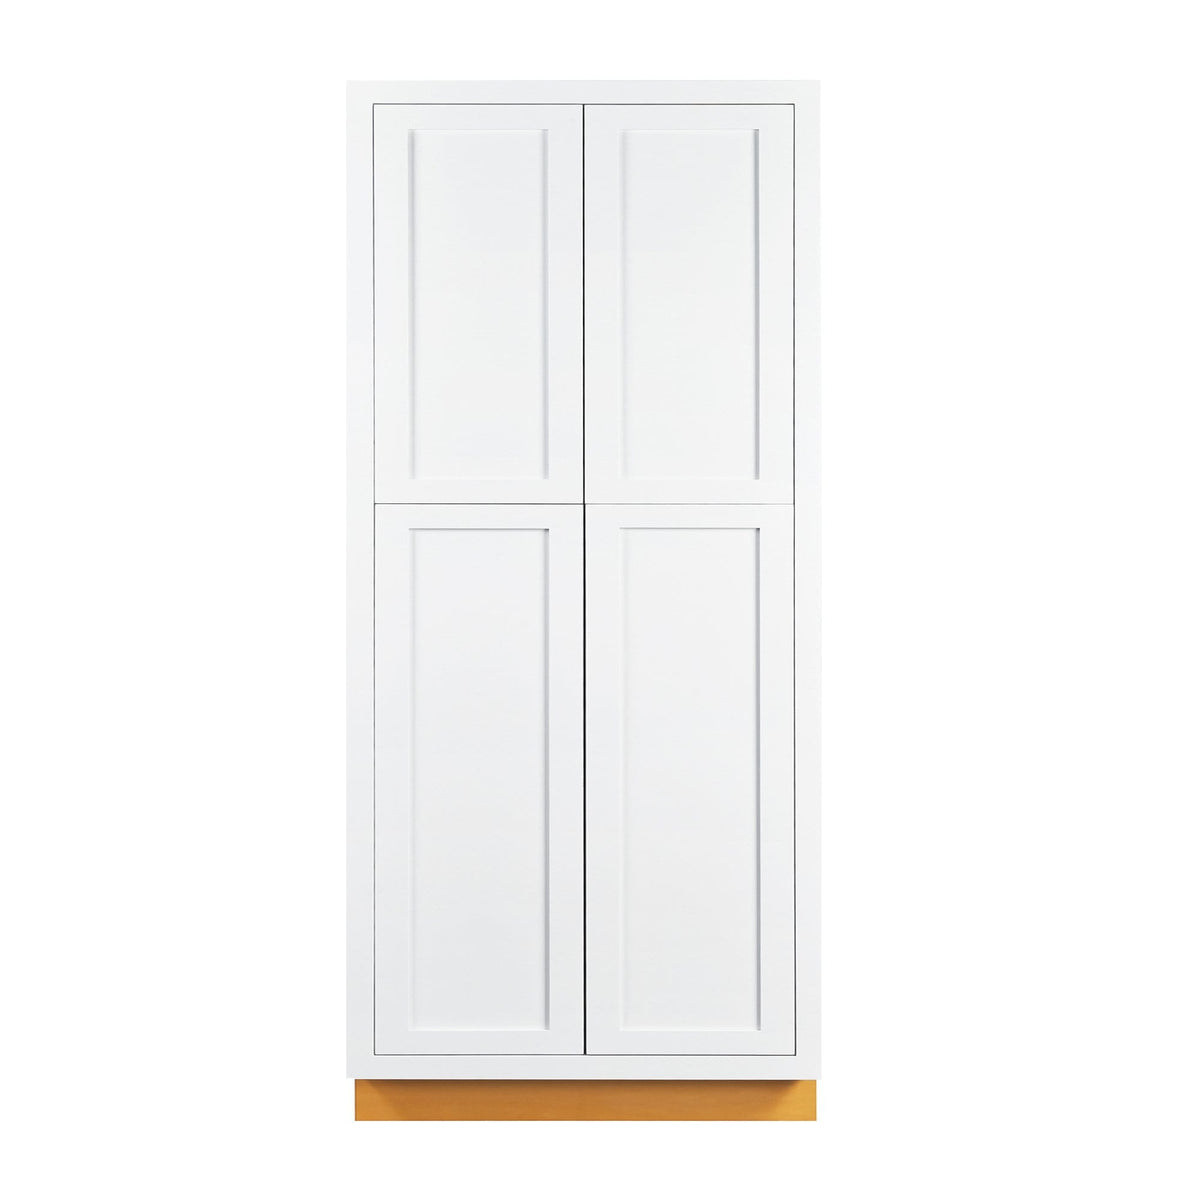 "Pantry Cabinet Pantry Snow White Inset Shaker Cabinet 93"" Tall 24"", 30"" & 36"" Wide D1PC3693 Inset Kitchen Cabinets"